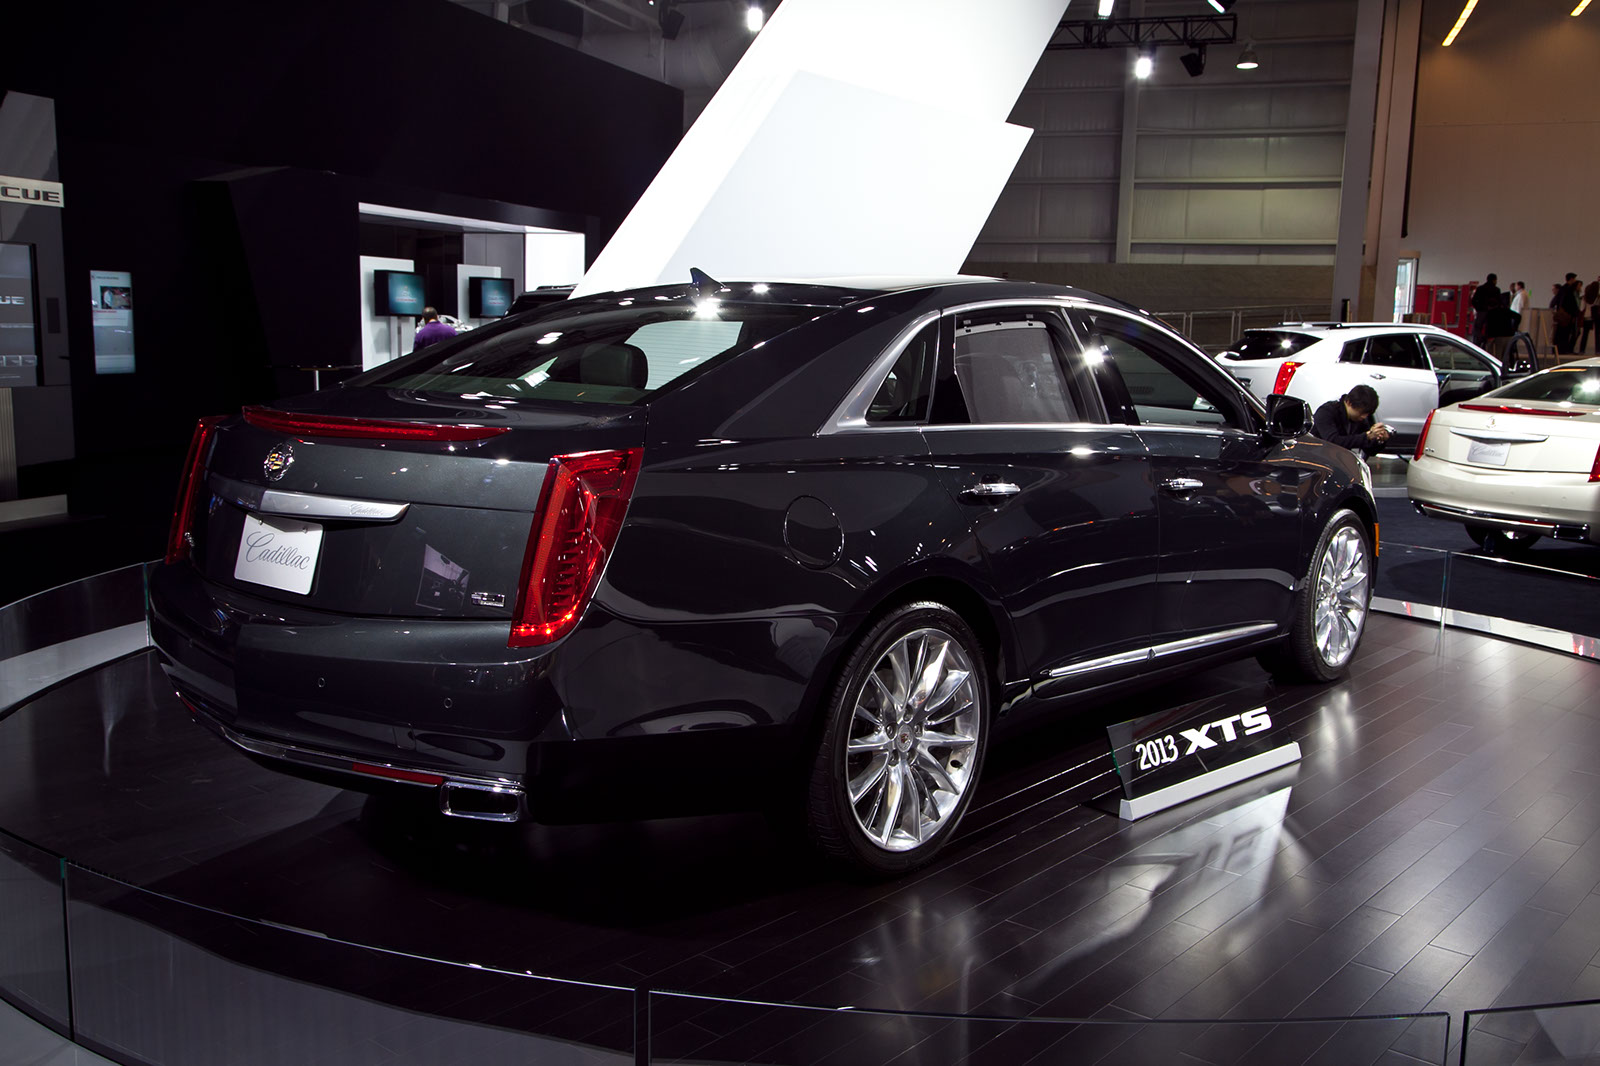 xts specs autotrader price trims research photos cadillac reviews ca options